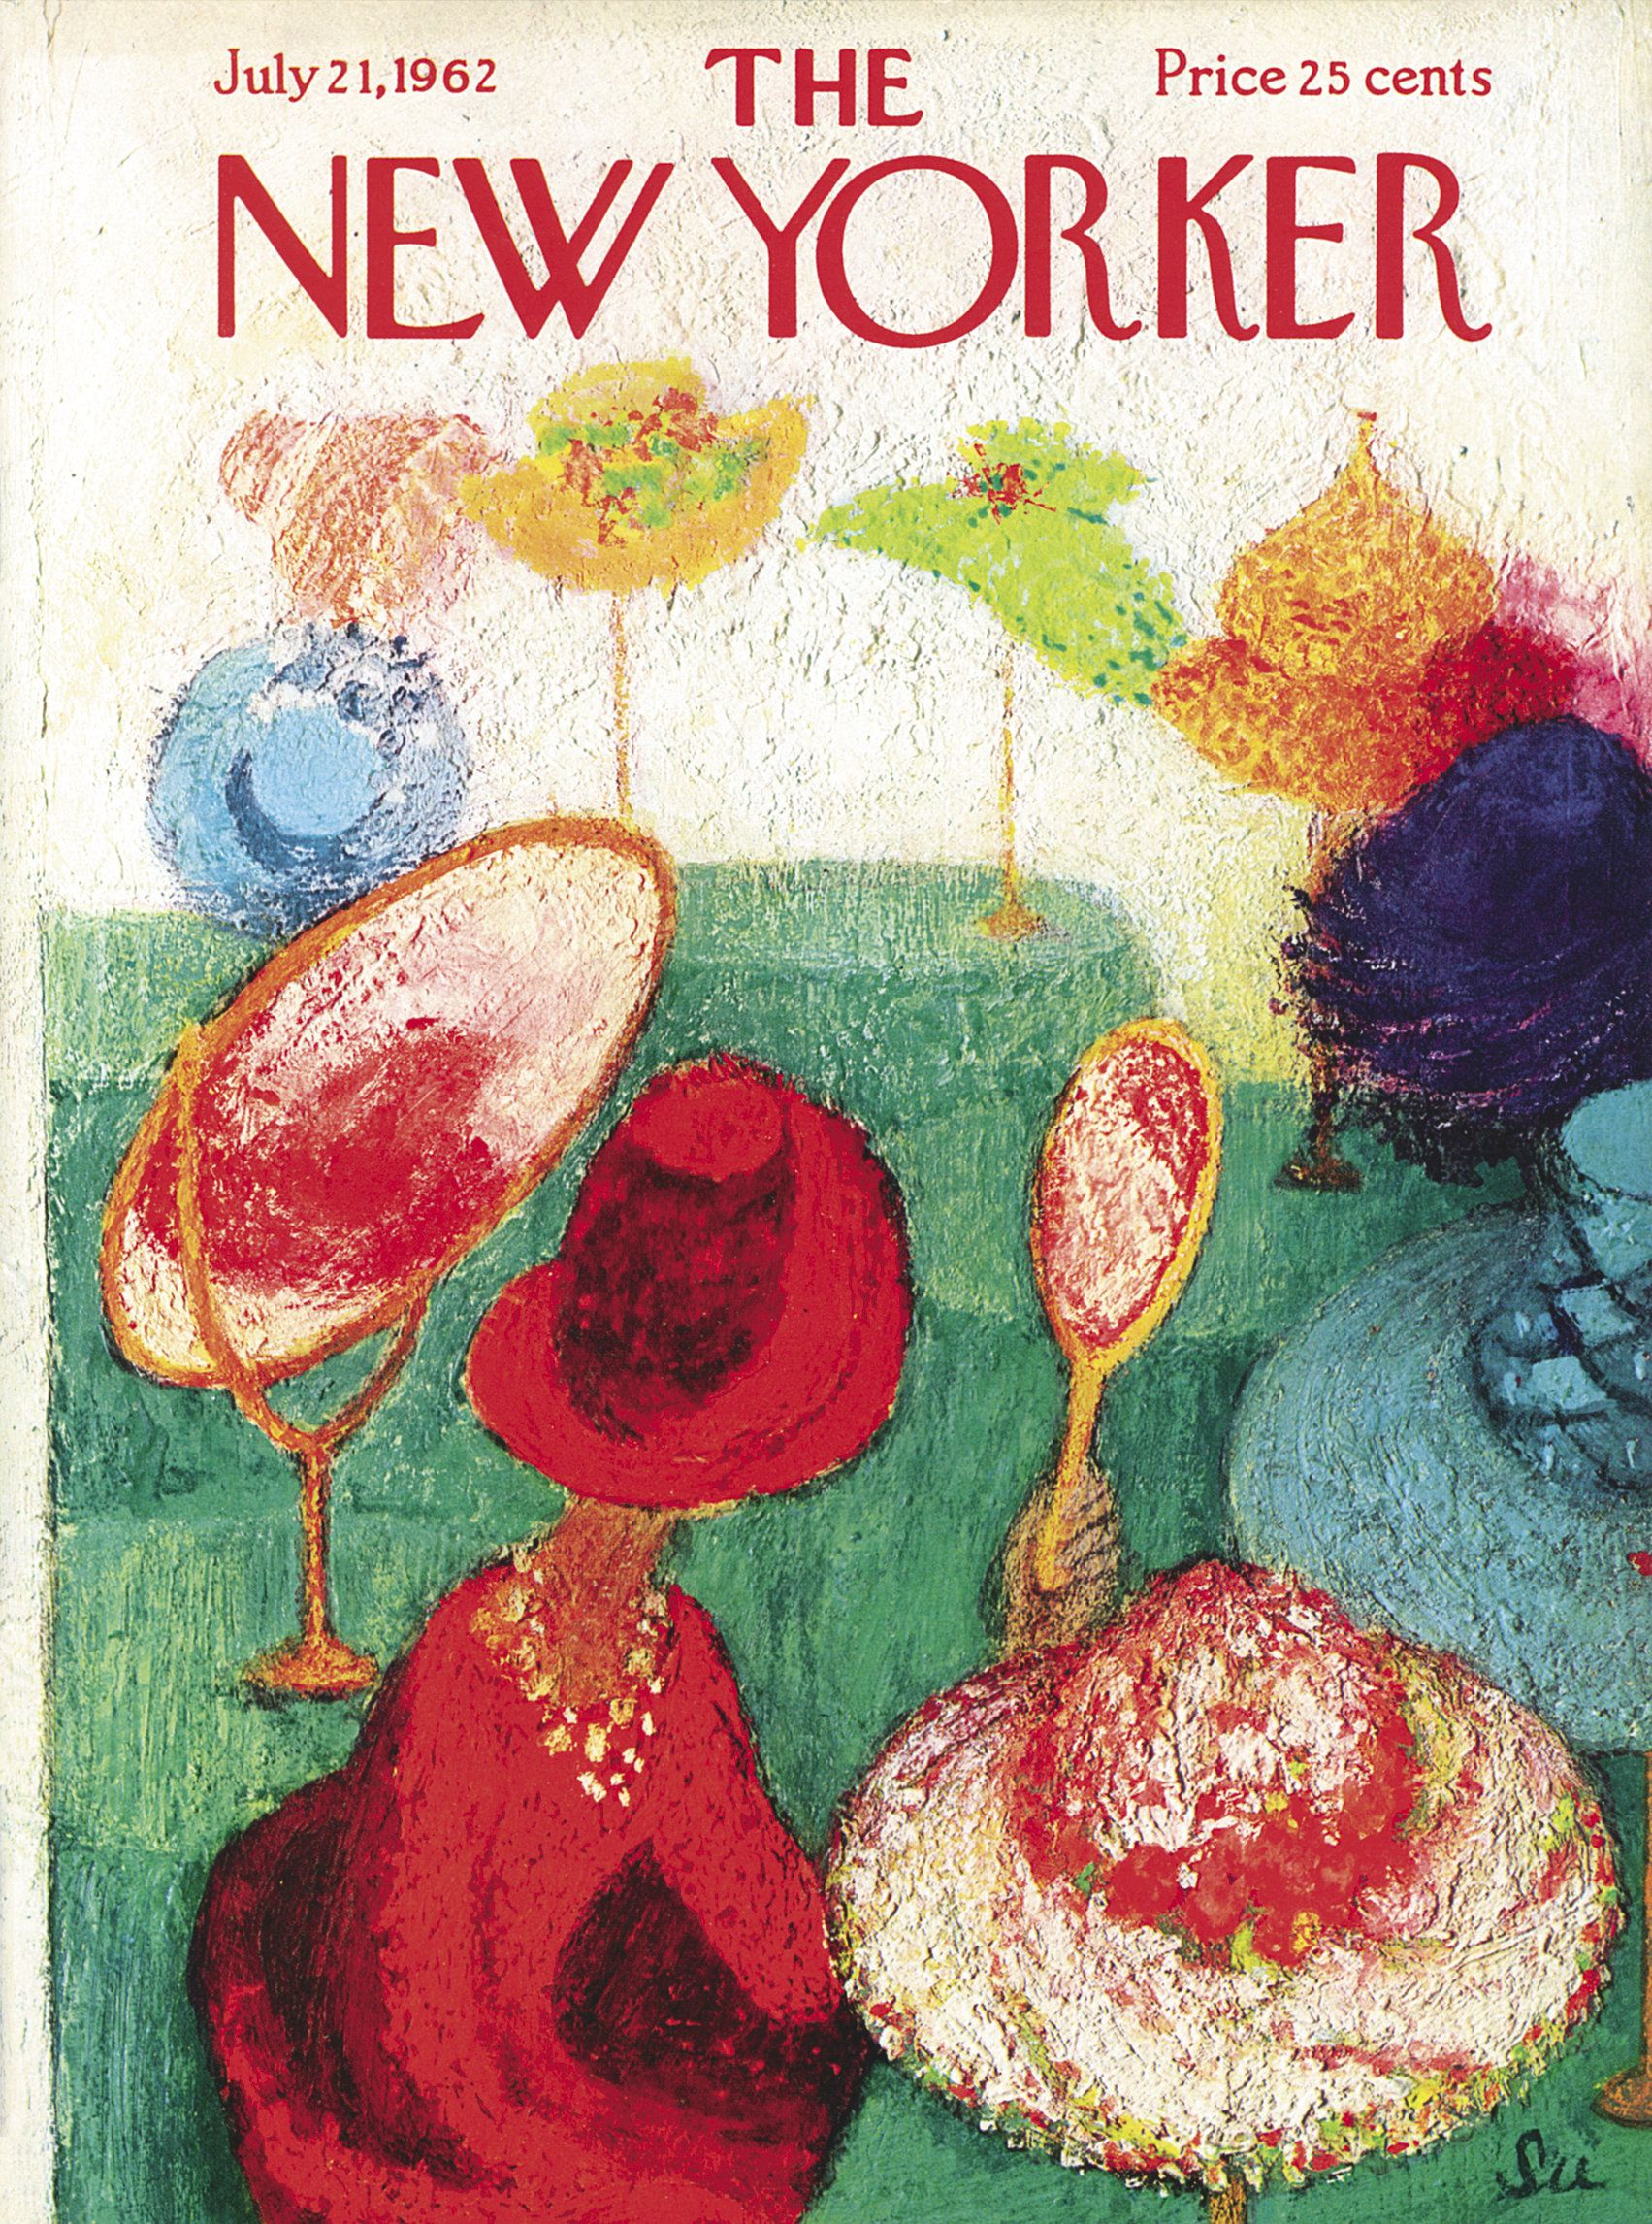 The New Yorker - Saturday, July 21, 1962 - Issue # 1953 - Vol. 38 - N° 22 - Cover by : Su Zeigler